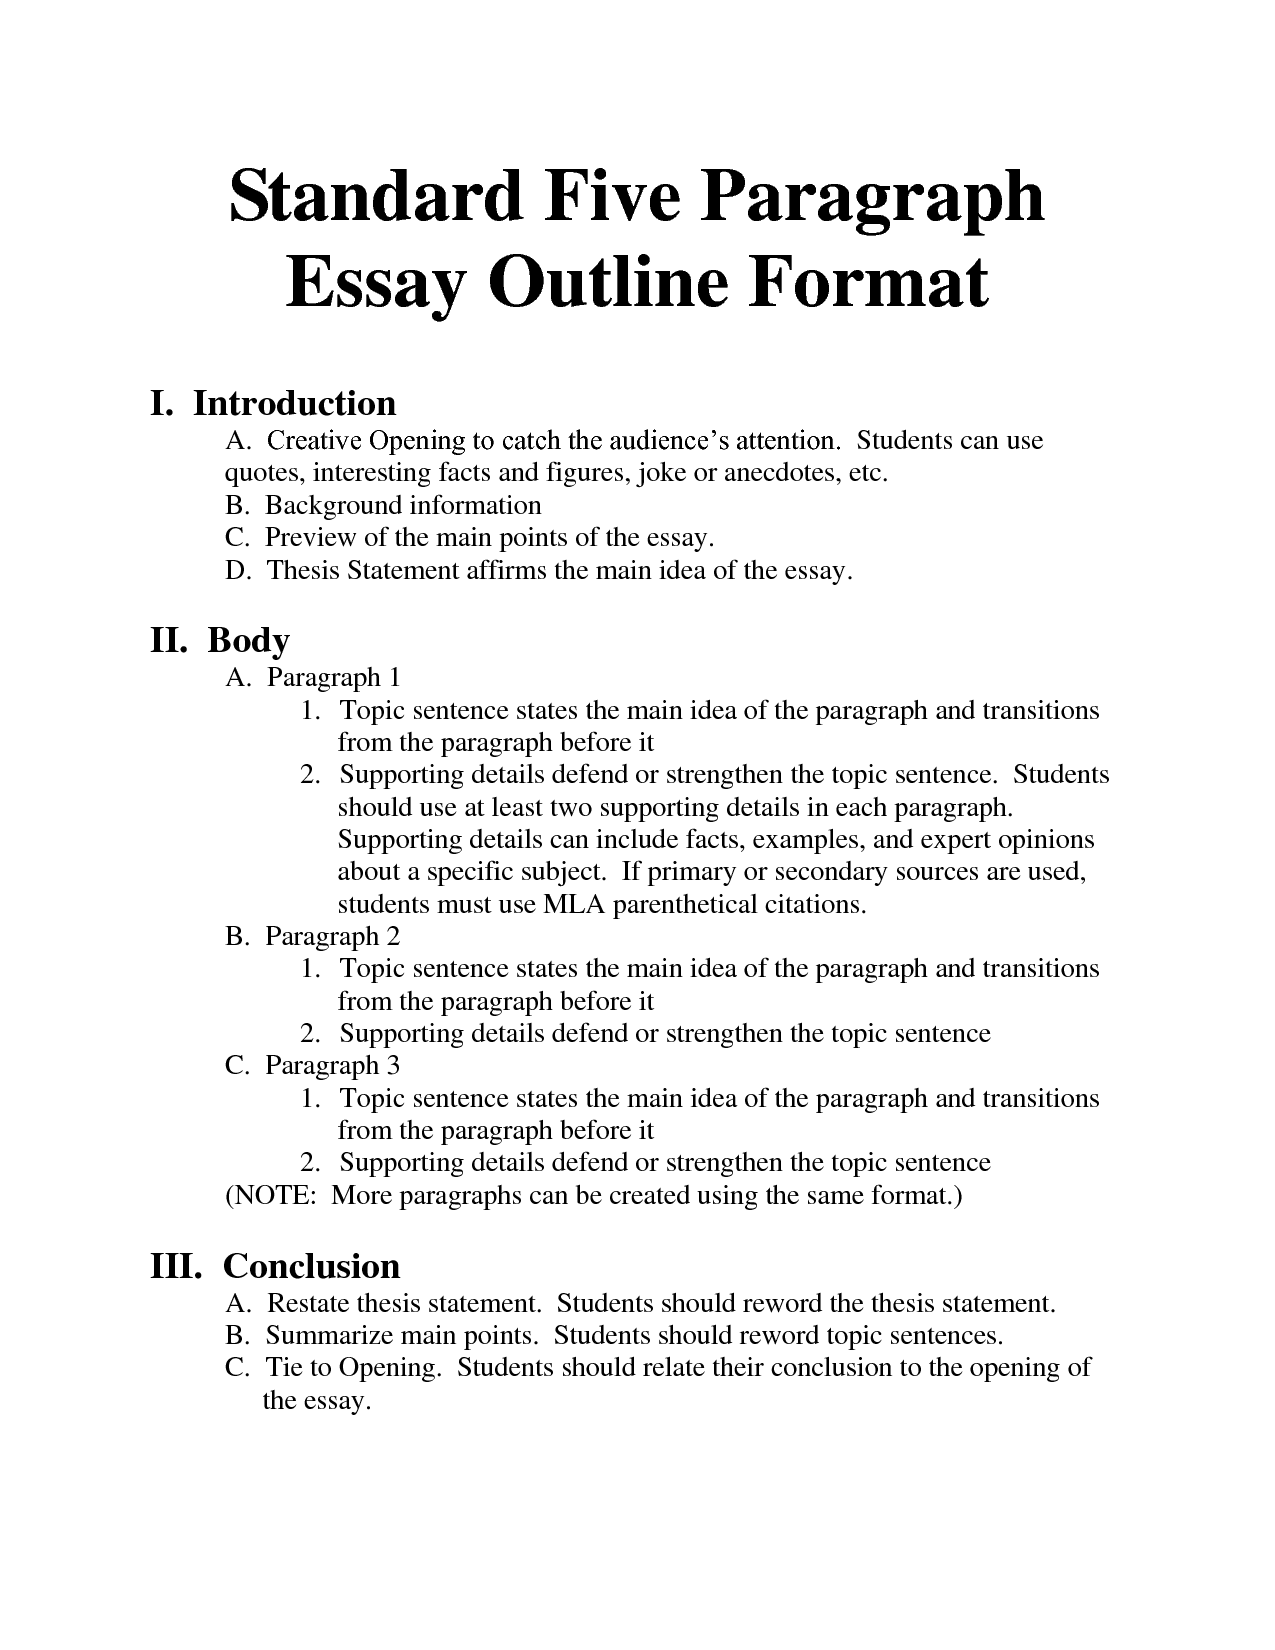 Thesis Statement For A Persuasive Essay Standard Essay Format  Bing Images American Dream Essay Thesis also Health Issues Essay Standard Essay Format  Bing Images  Essays Homeschool  Pinterest  Topics For Argumentative Essays For High School